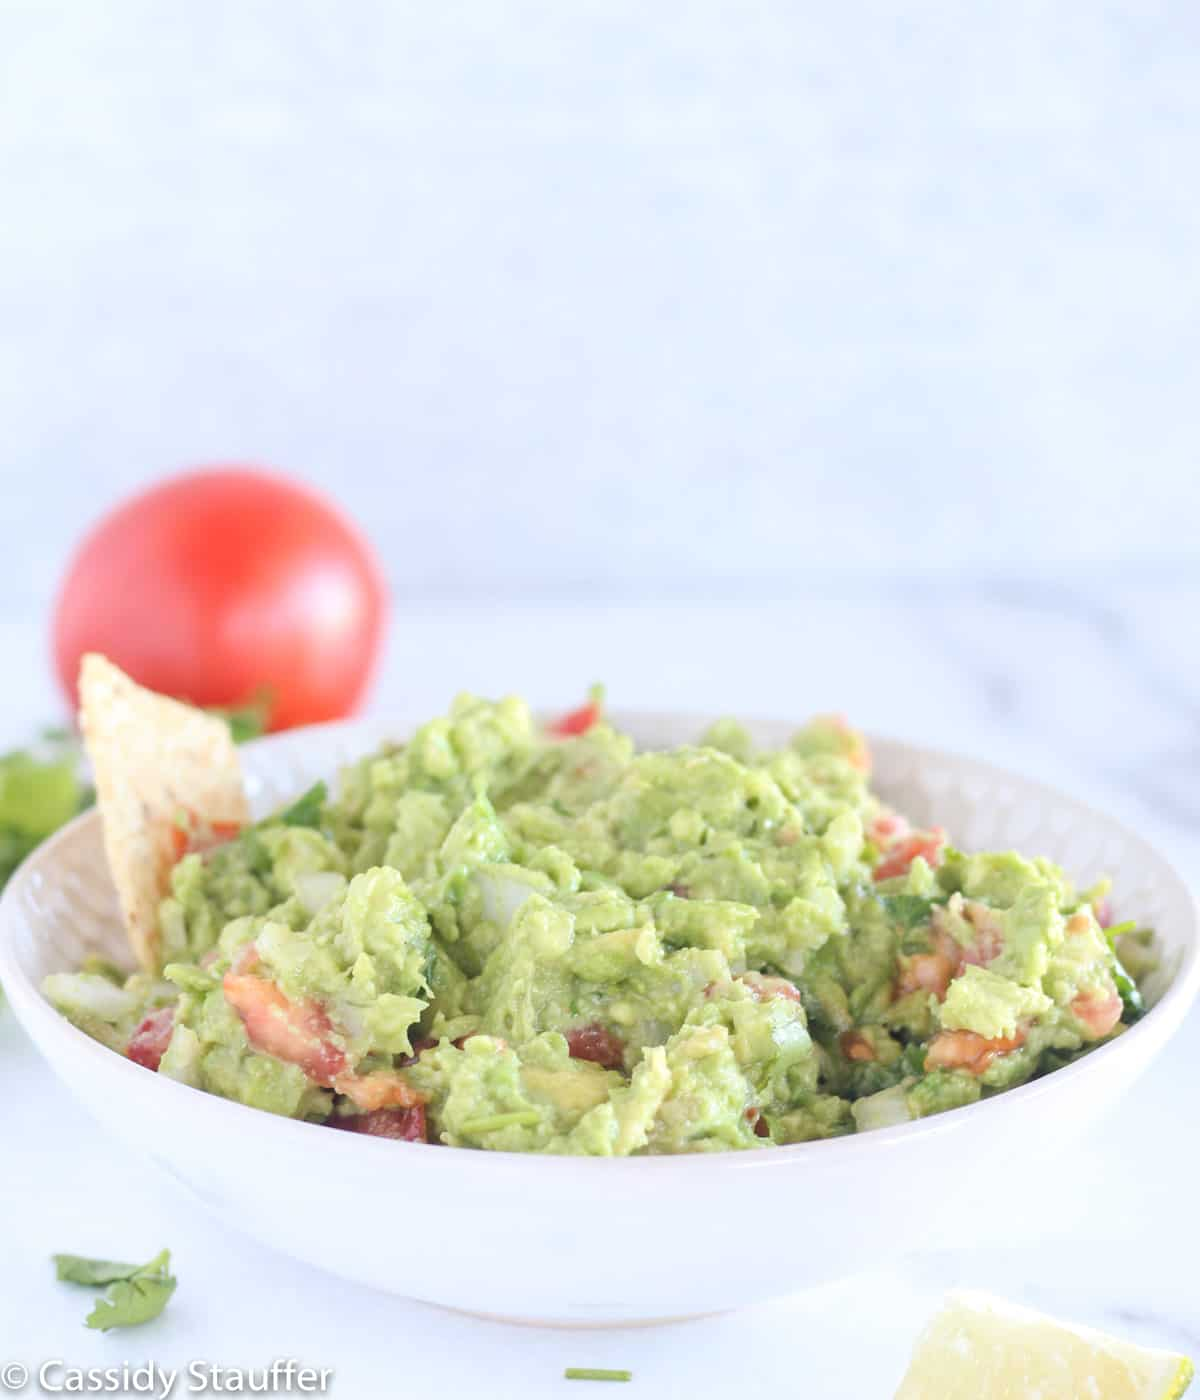 Sideshot of guacamole in white bowl with corn chips